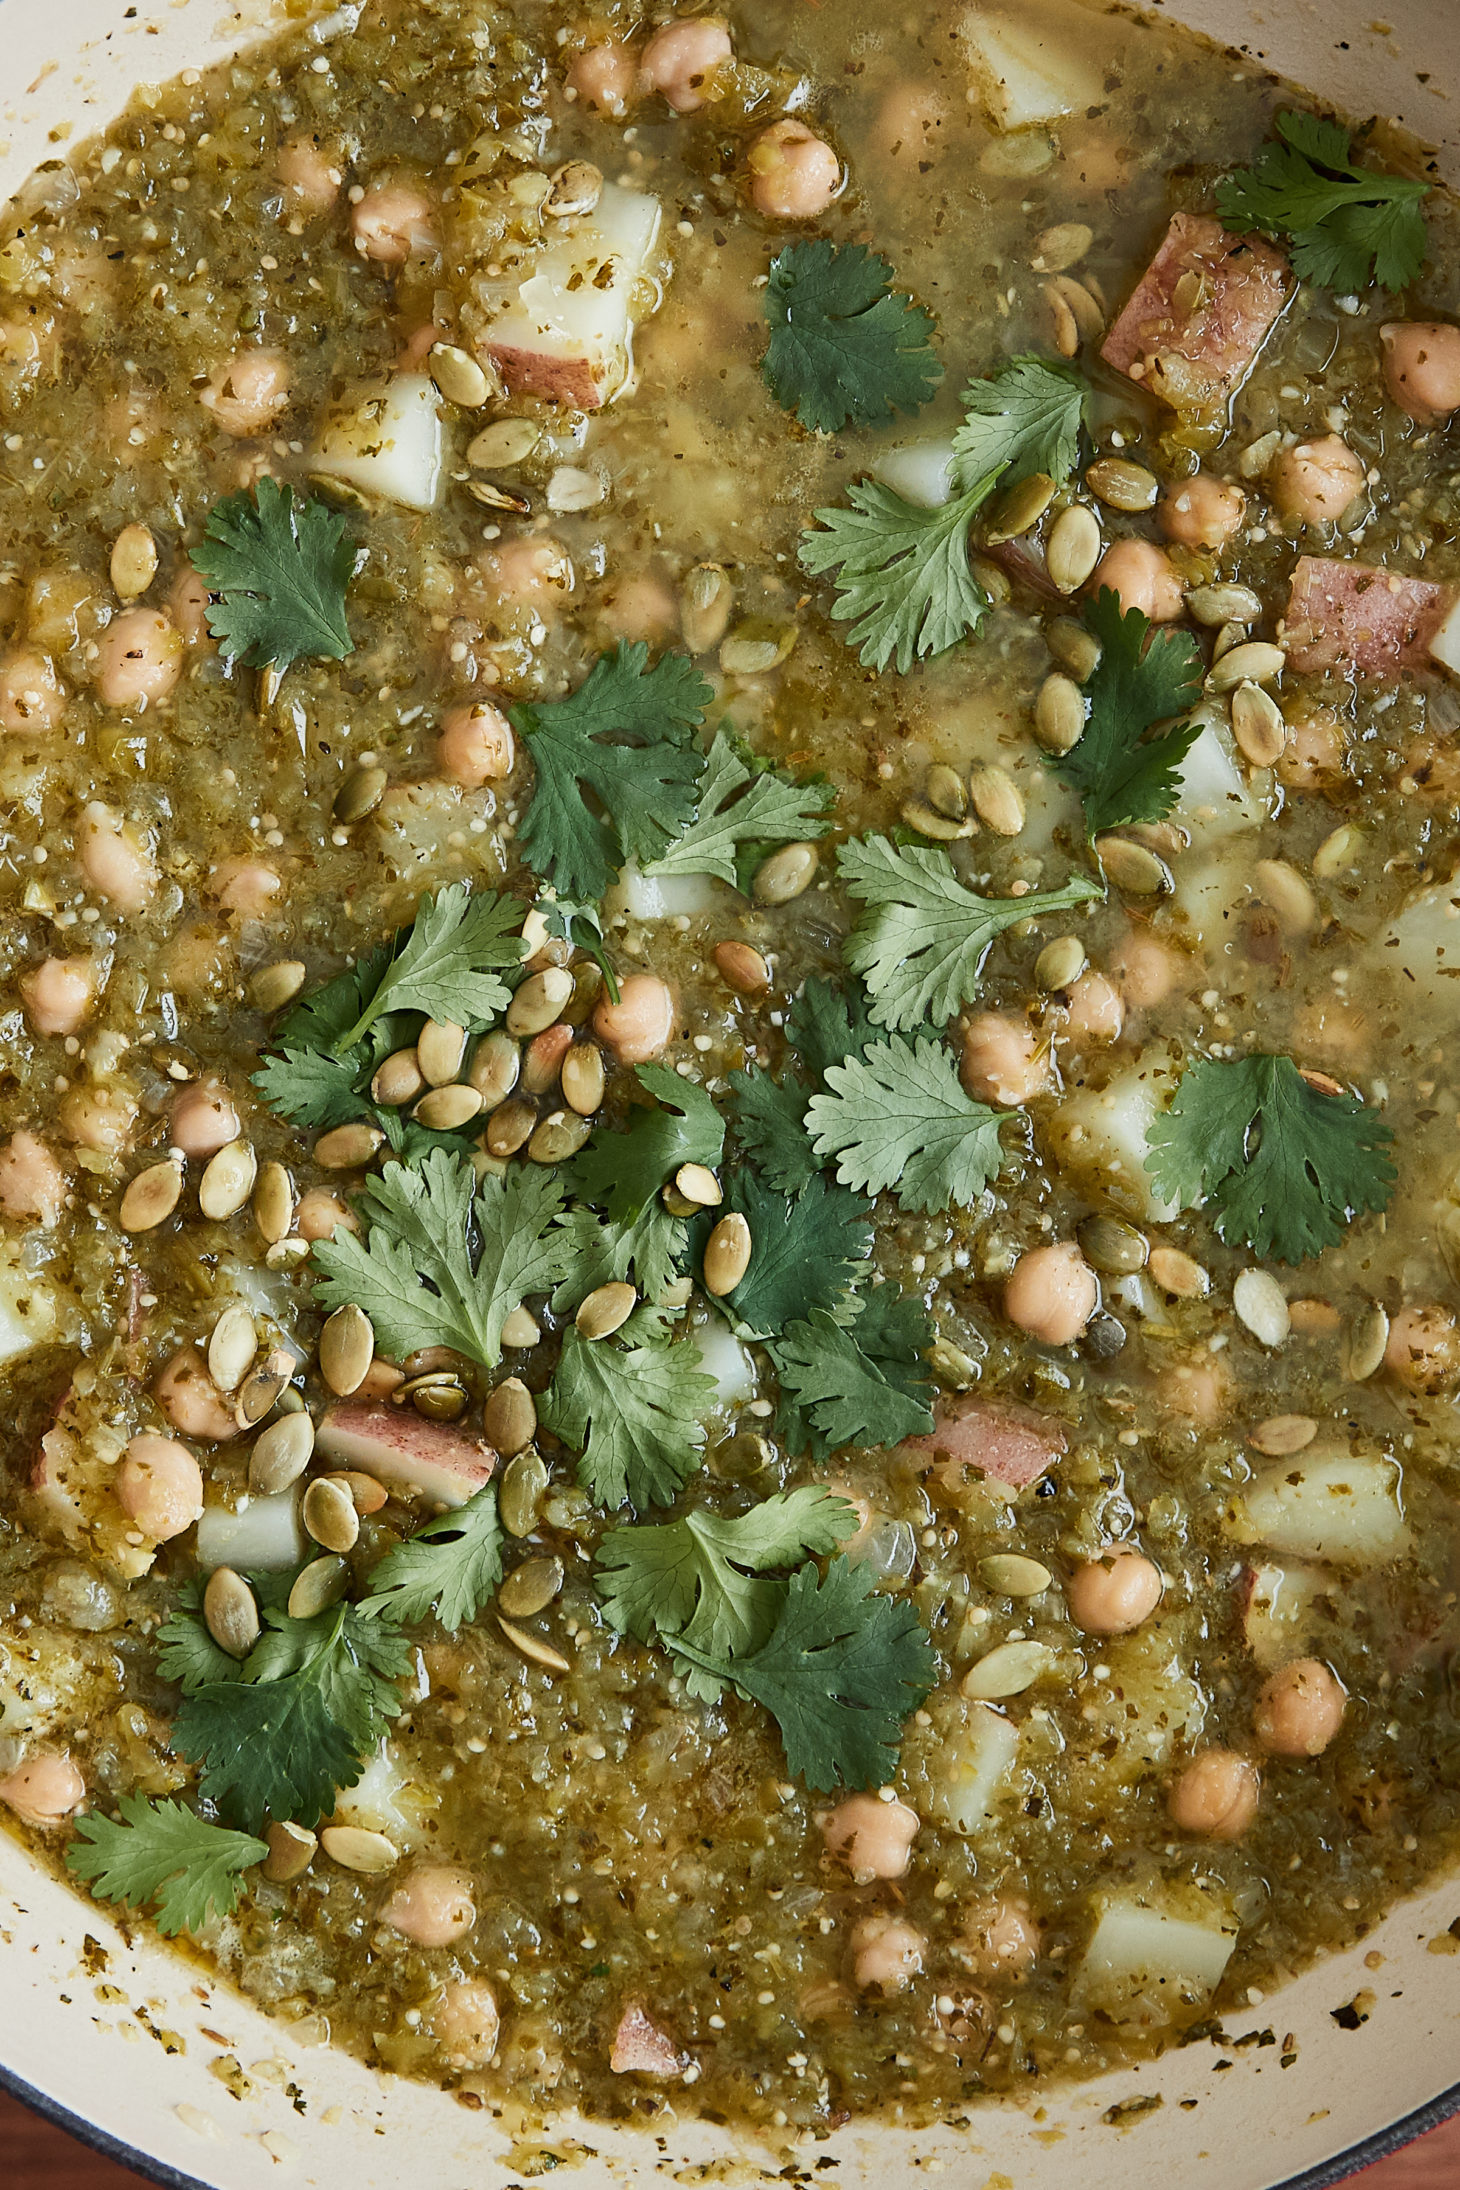 A close-up photo of green chickpea chili topped with cilantro and pepitas.